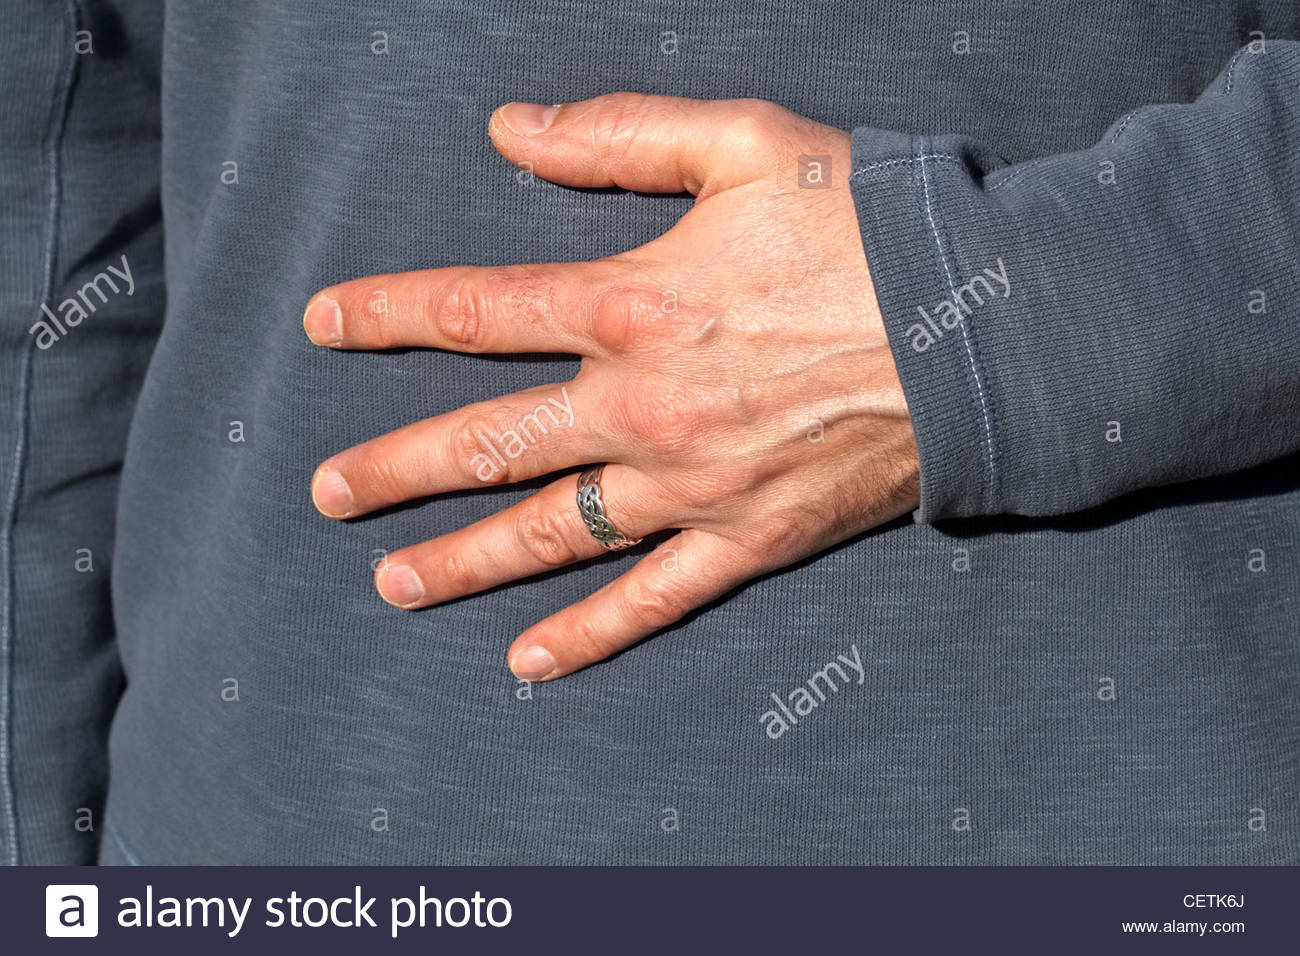 Man's Hand Wearing Silver Wedding Ring On Finger  Stock Image